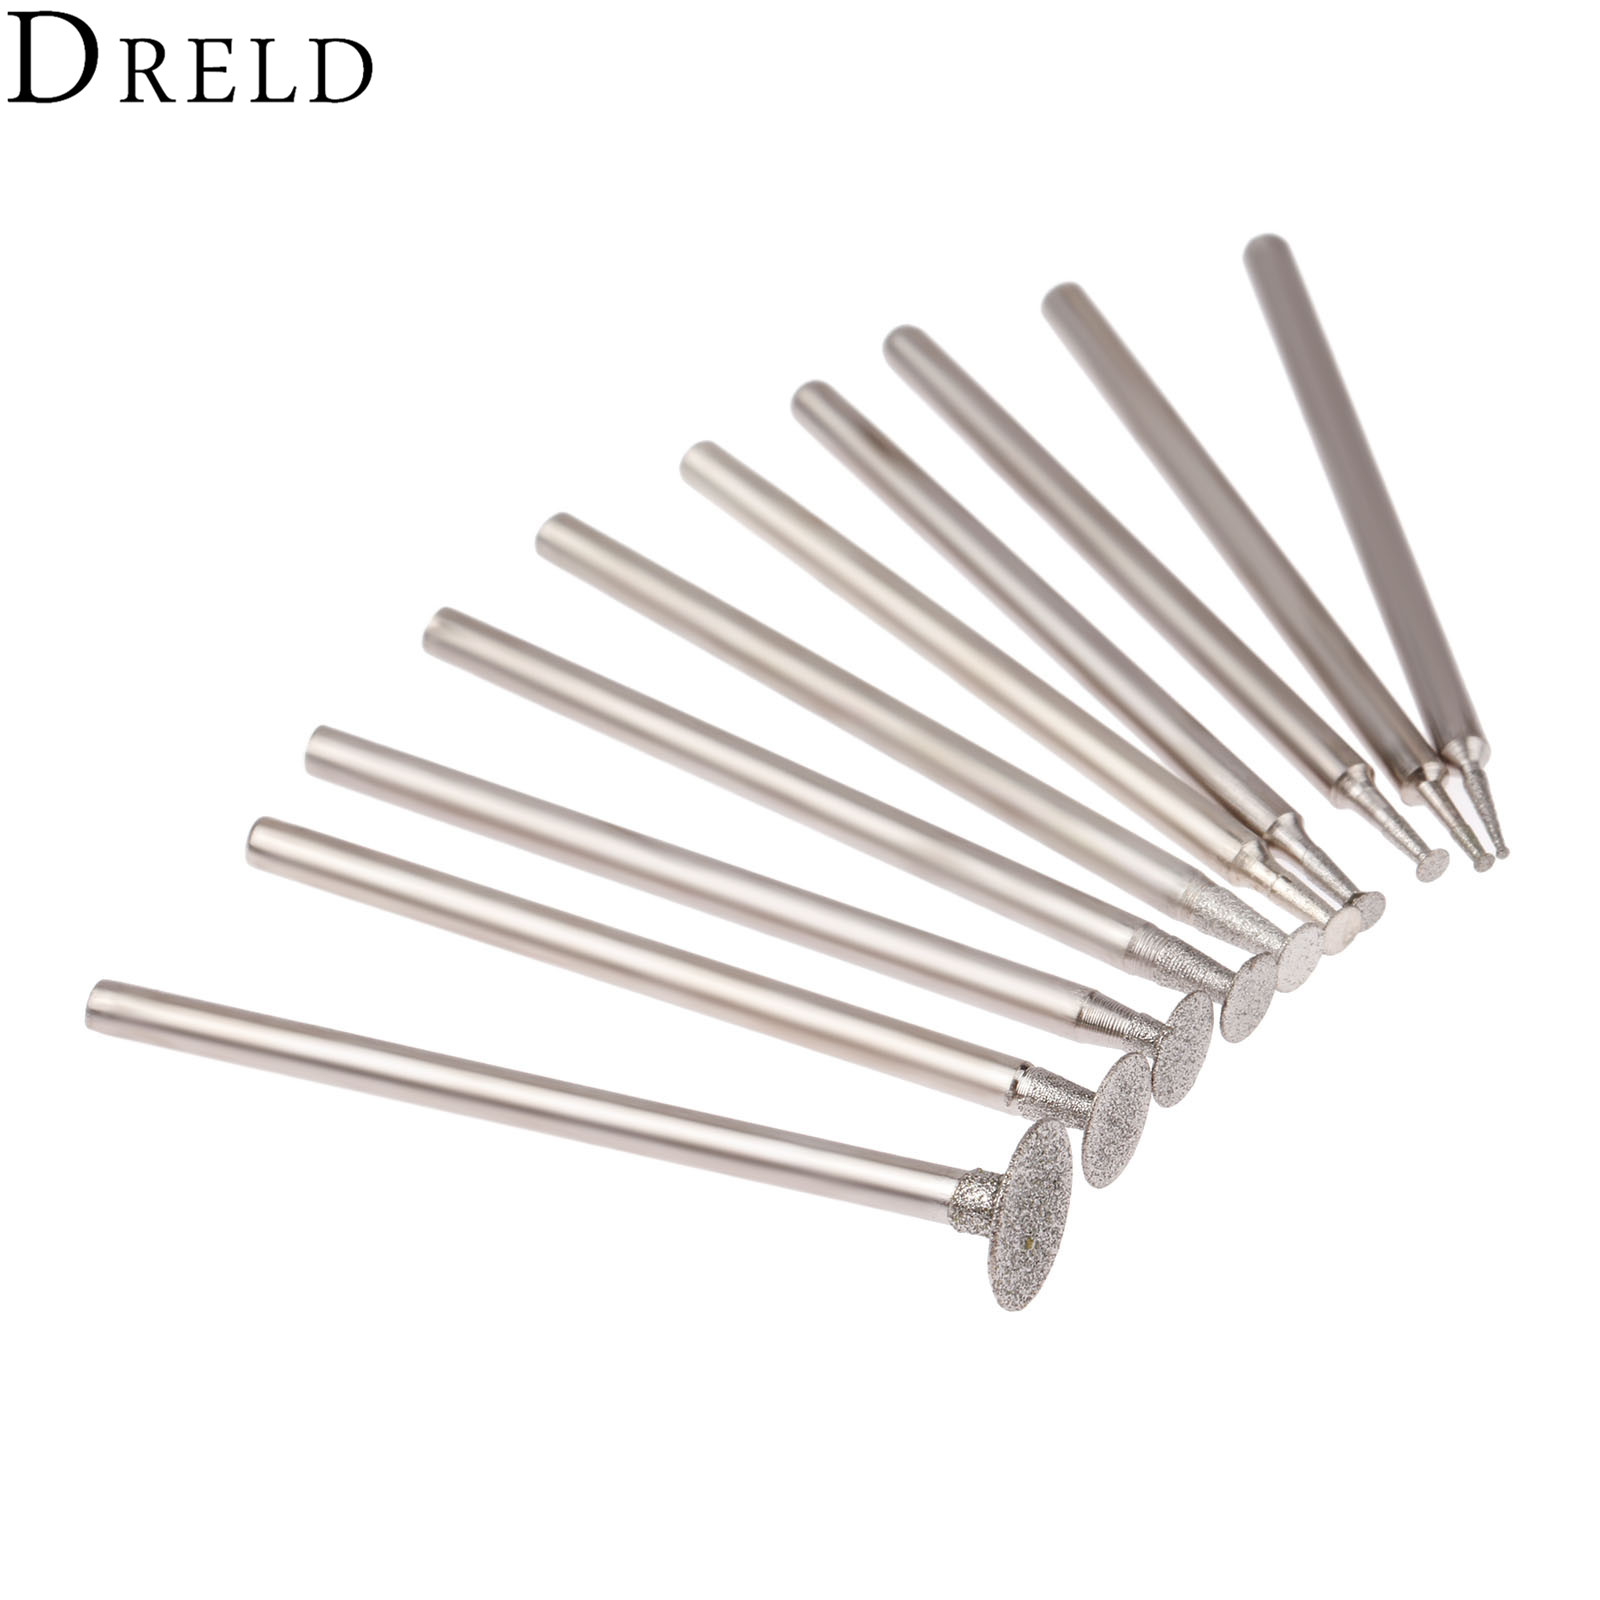 DRELD 10Pcs Dremel Accesories 2.35mm Shank Diamond Mounted Point Grinding Head Stone Jade Carving Polishing Engraving Tools